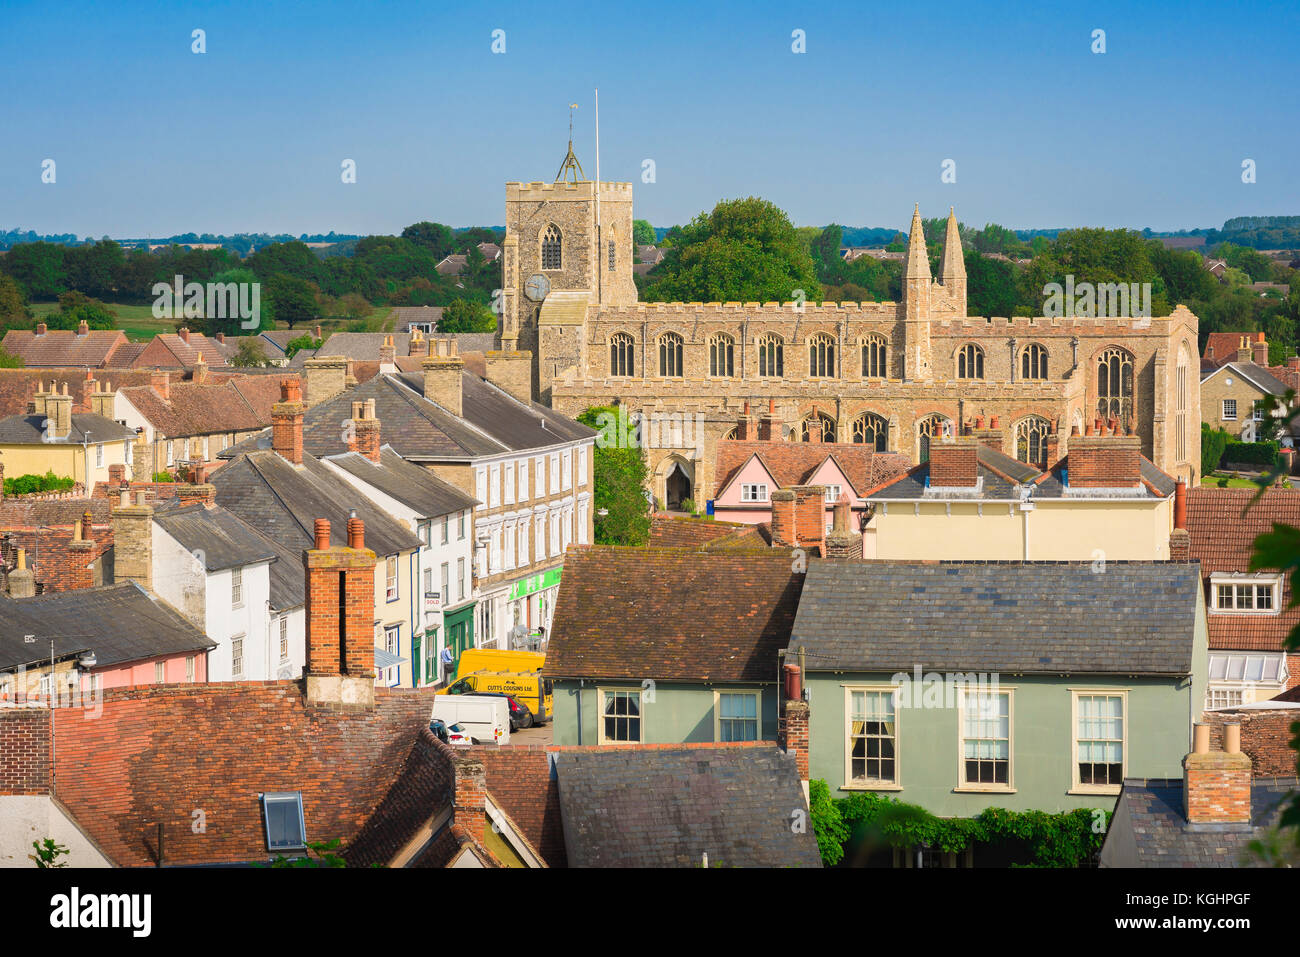 Clare Suffolk UK, aerial view of the village of Clare with its historic medieval church in Suffolk, England, Babergh - Stock Image